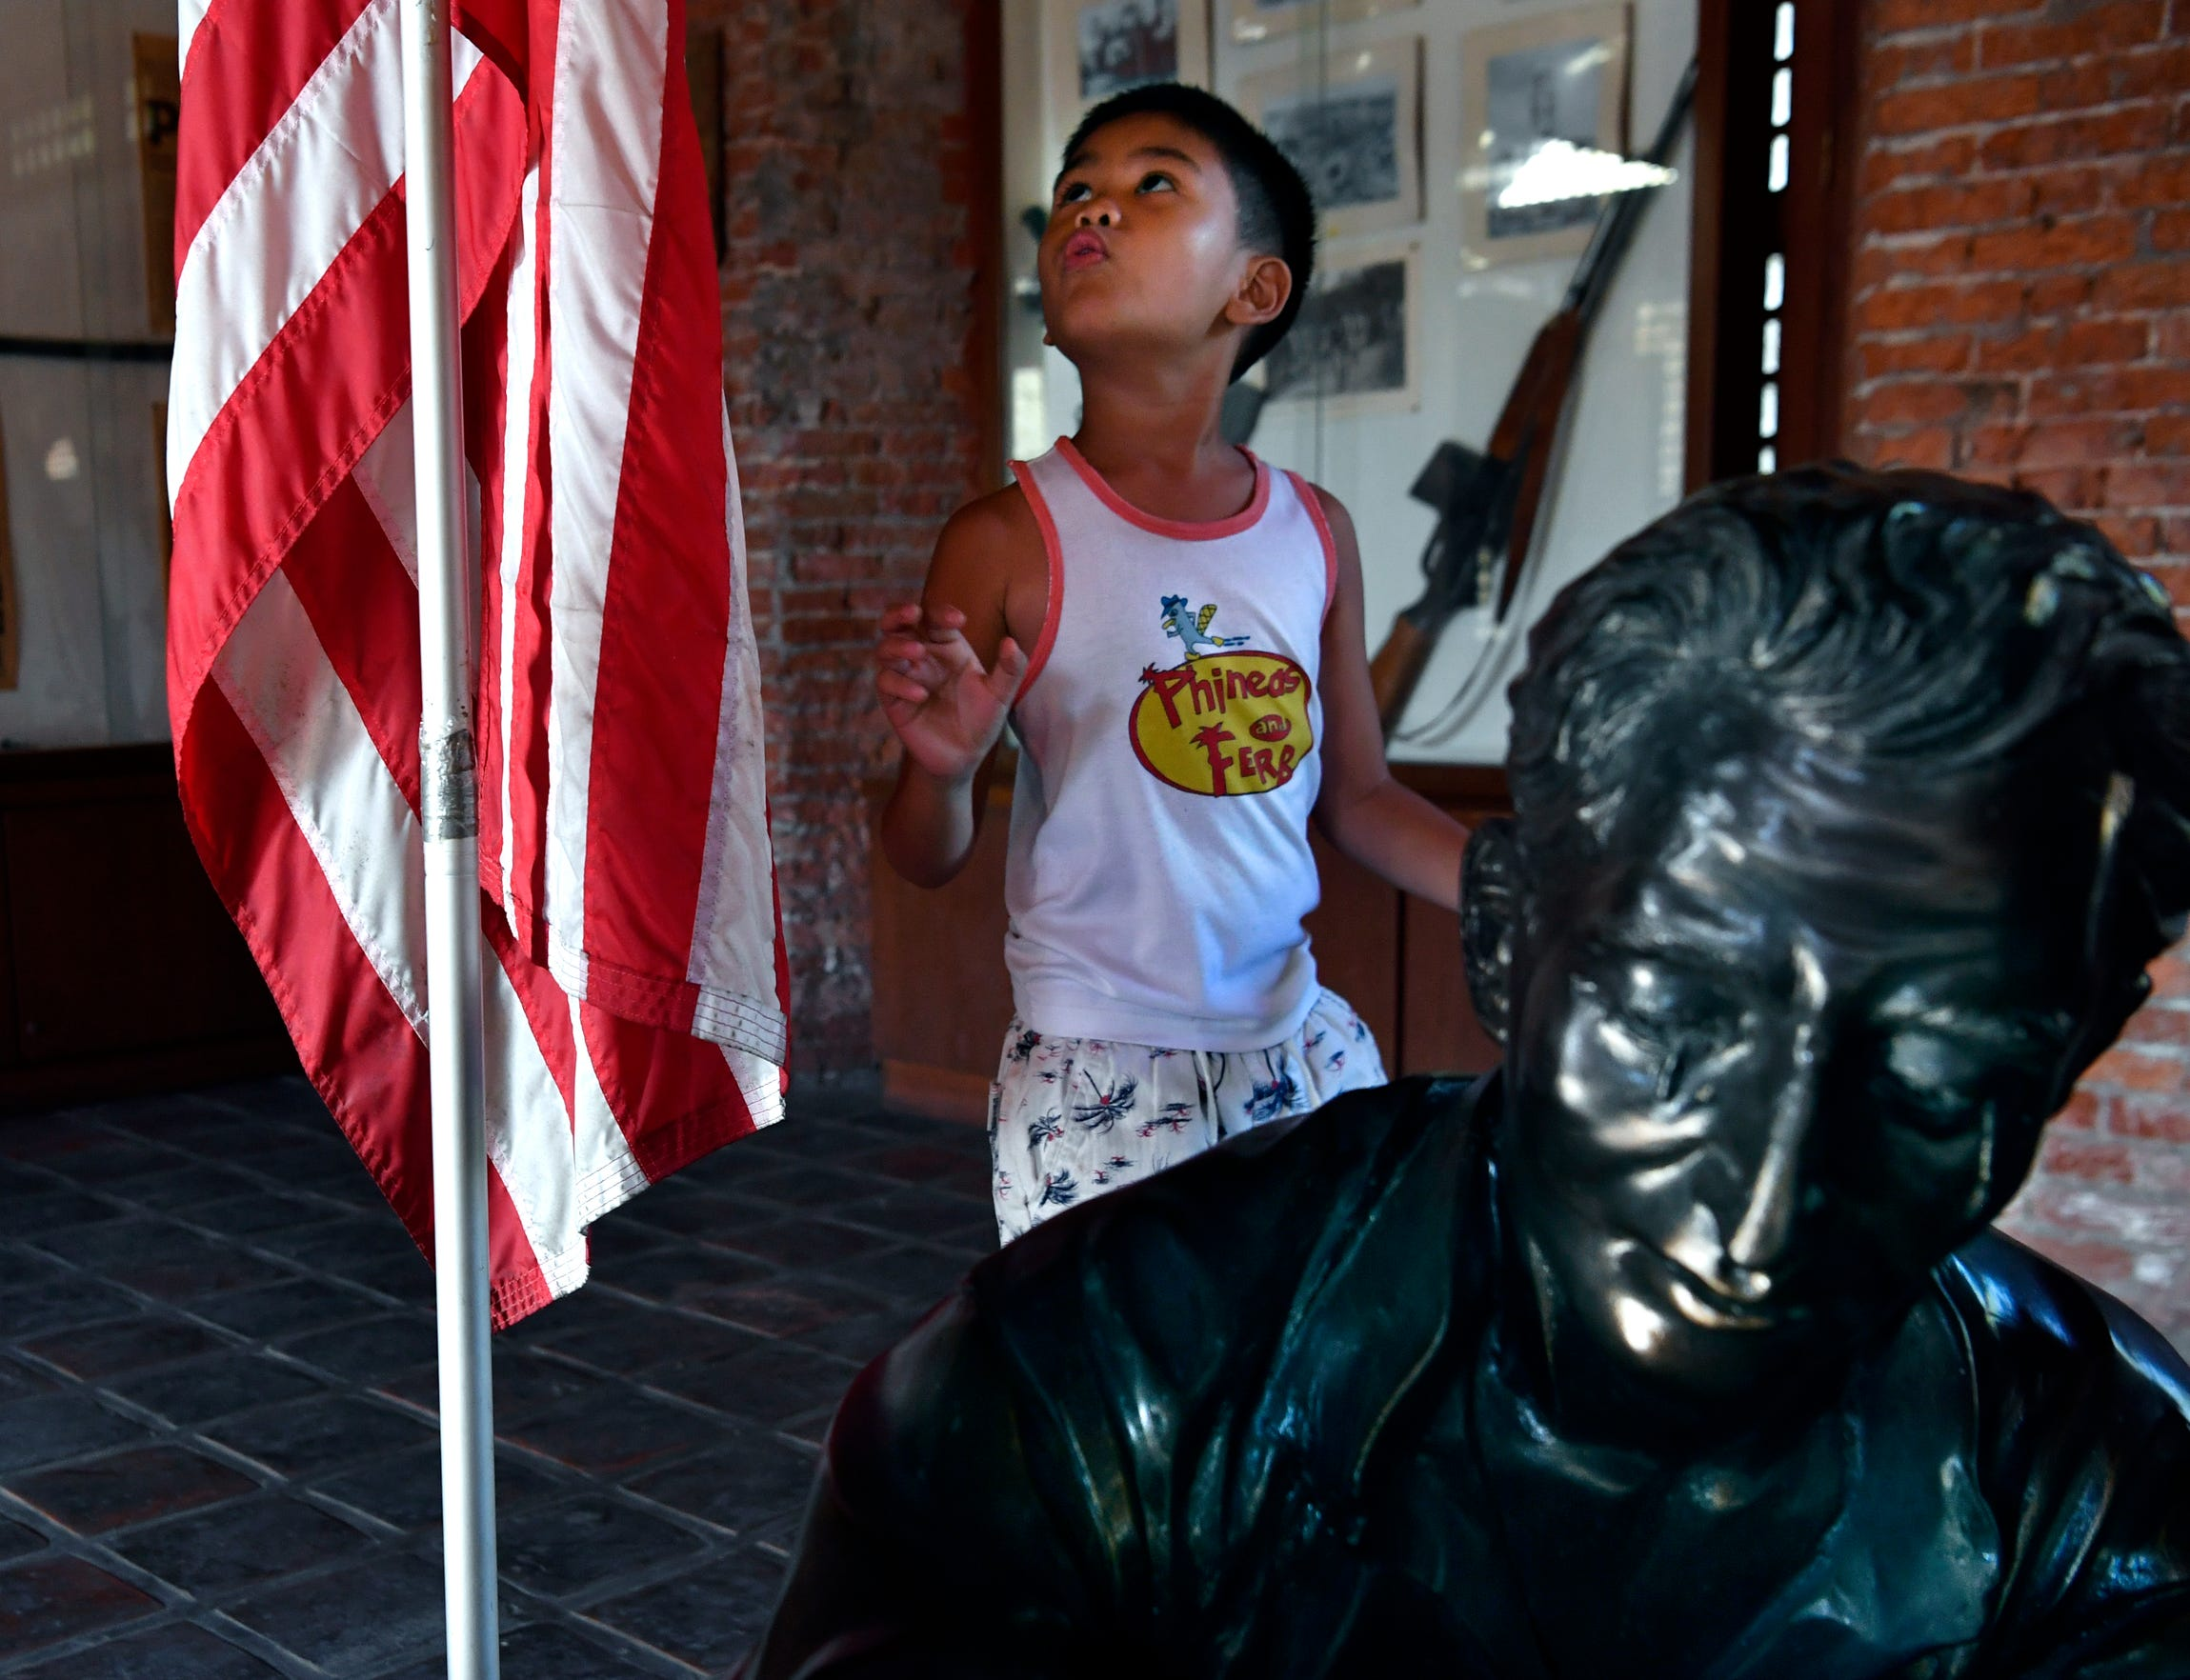 A young boy looks up at the American flag as he walks past statues depicting American and Filipino prisoners of war in the San Fernando train station Oct. 21, 2019, Philippines. The station is where American and Filipino soldiers were loaded into boxcars and sent north to prison camps during Word War II. The station is now a museum.